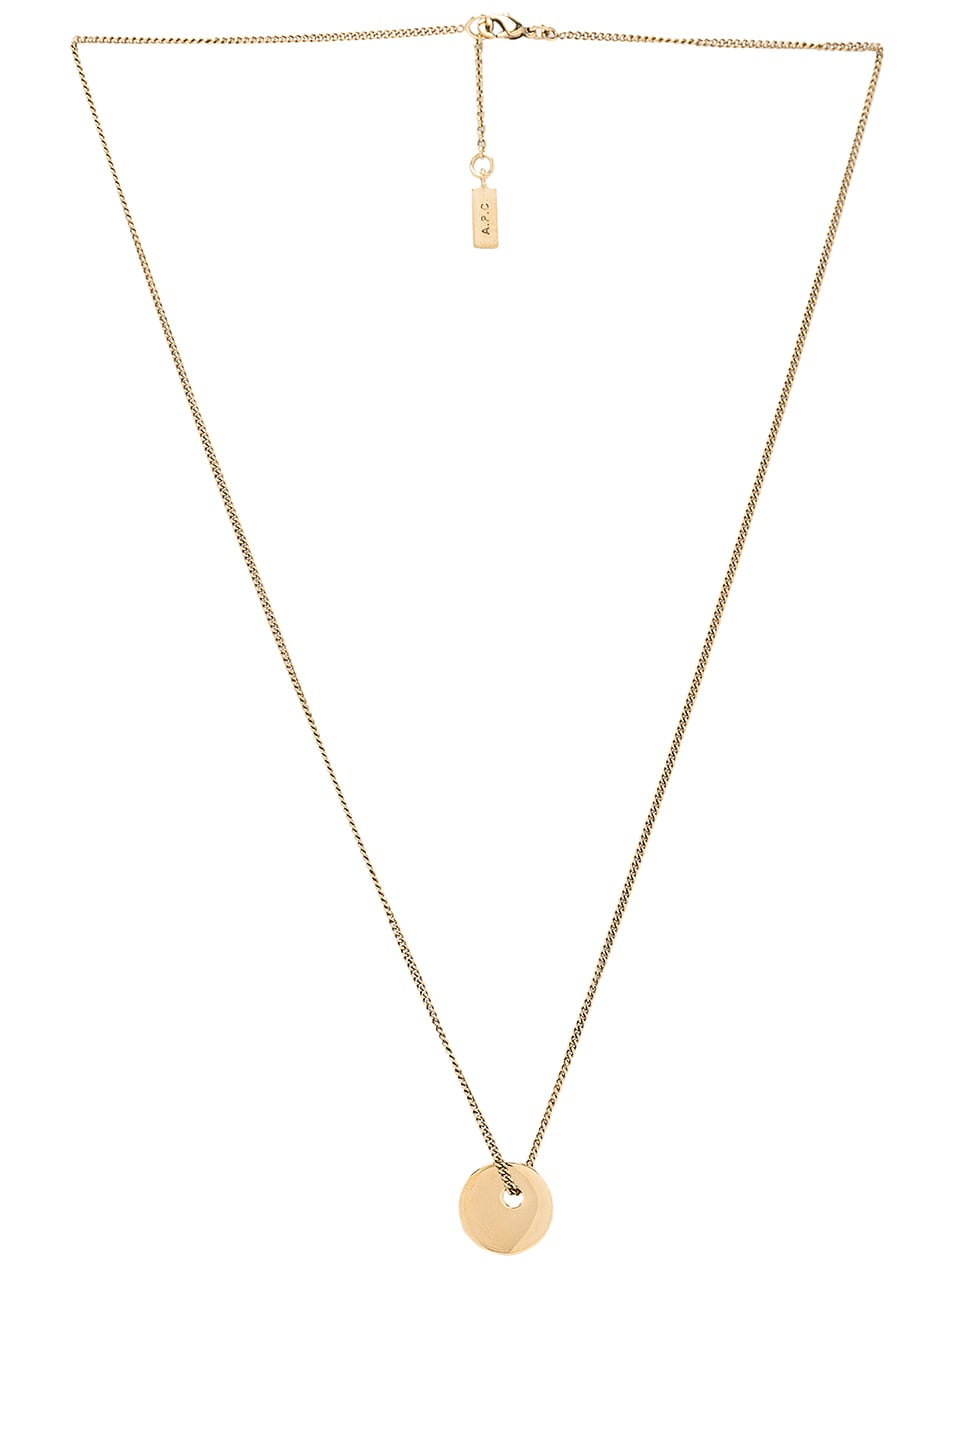 p necklace a metallic gold money jewelry product in apc c gallery normal lyst